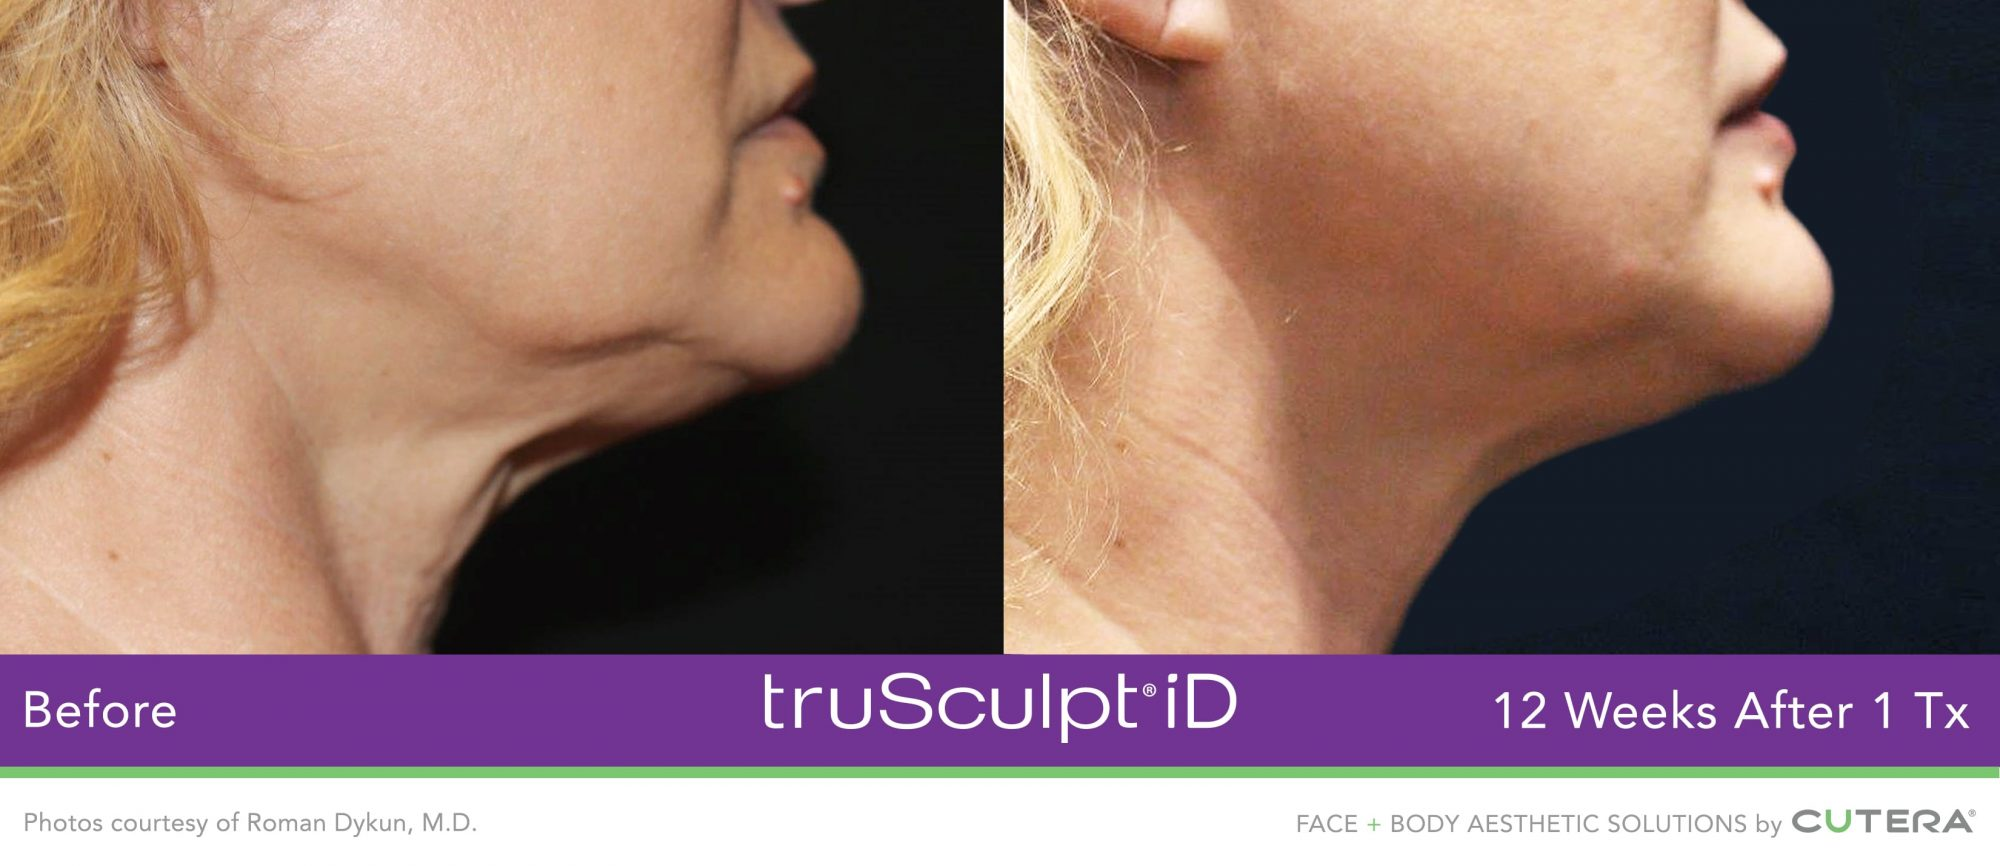 woman's chin before and after truSculpt 3D